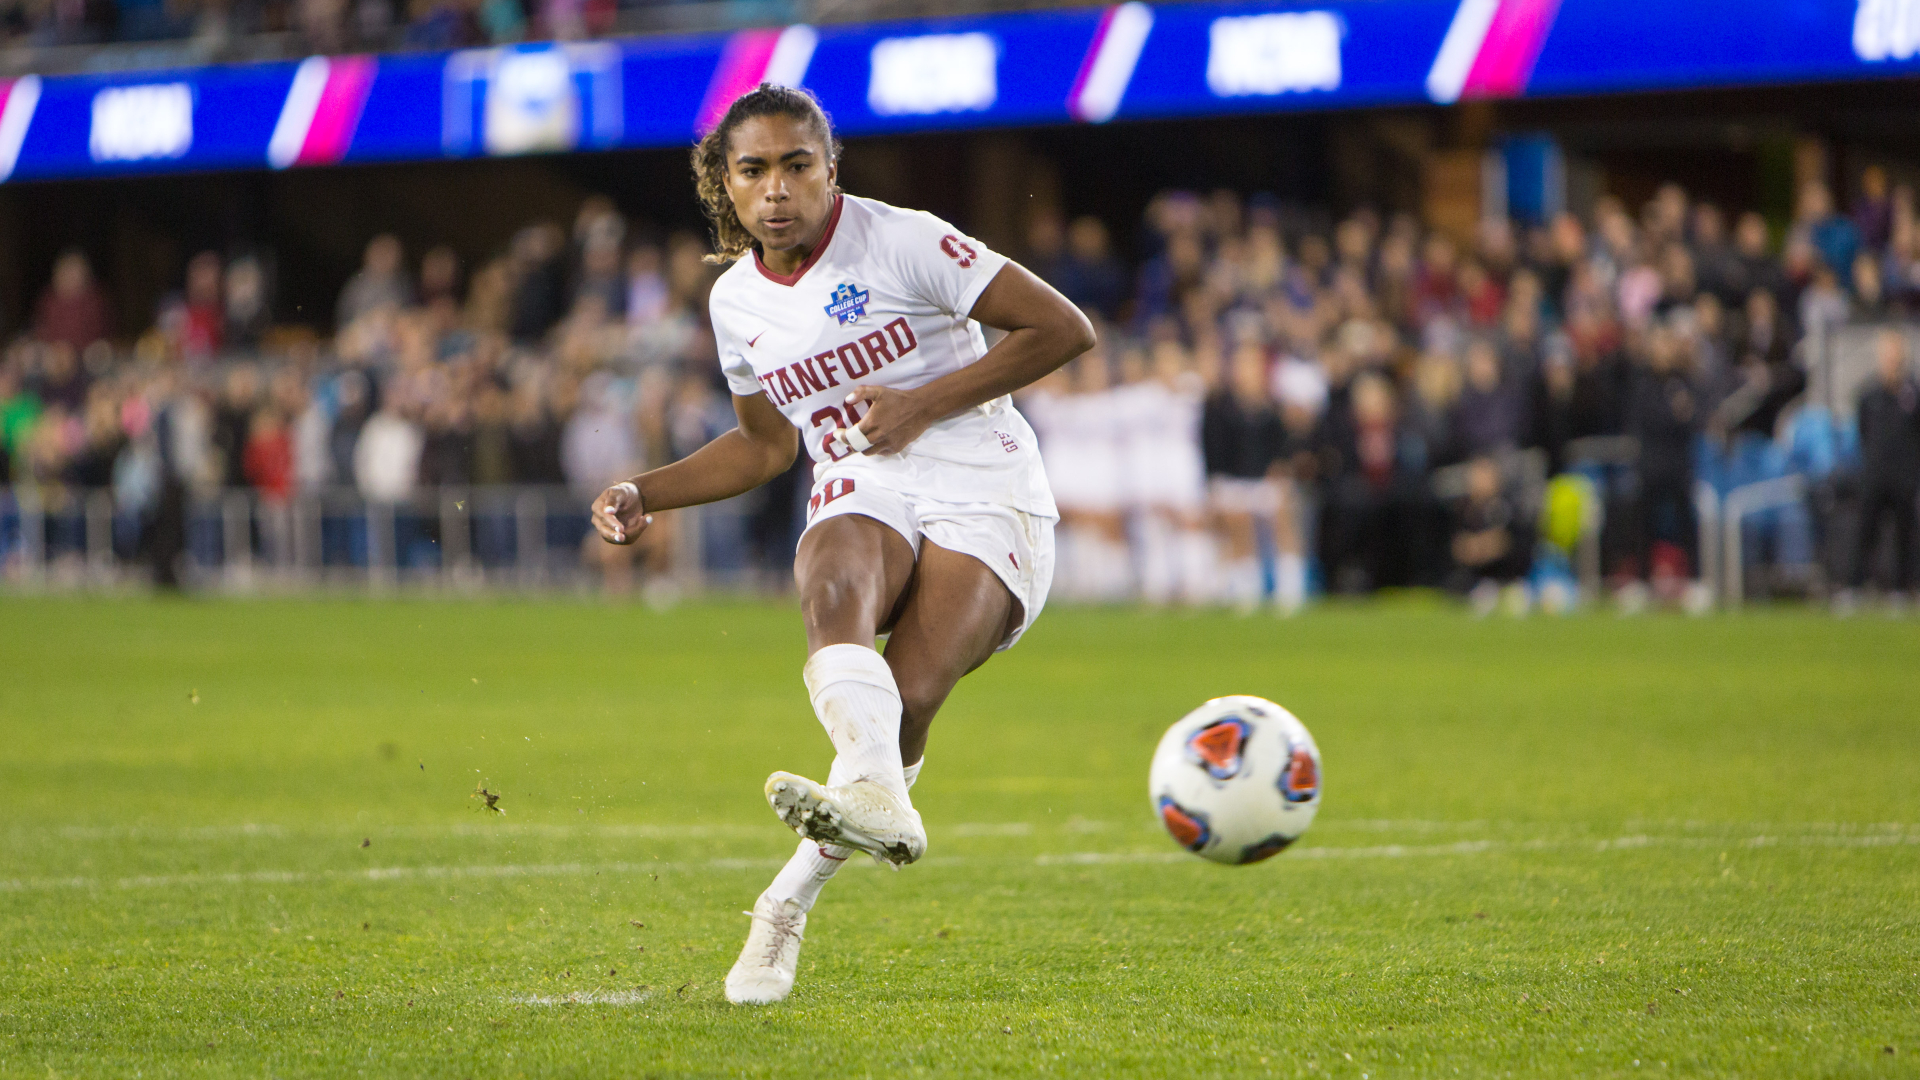 Macario set for USWNT debut after FIFA approves eligibility